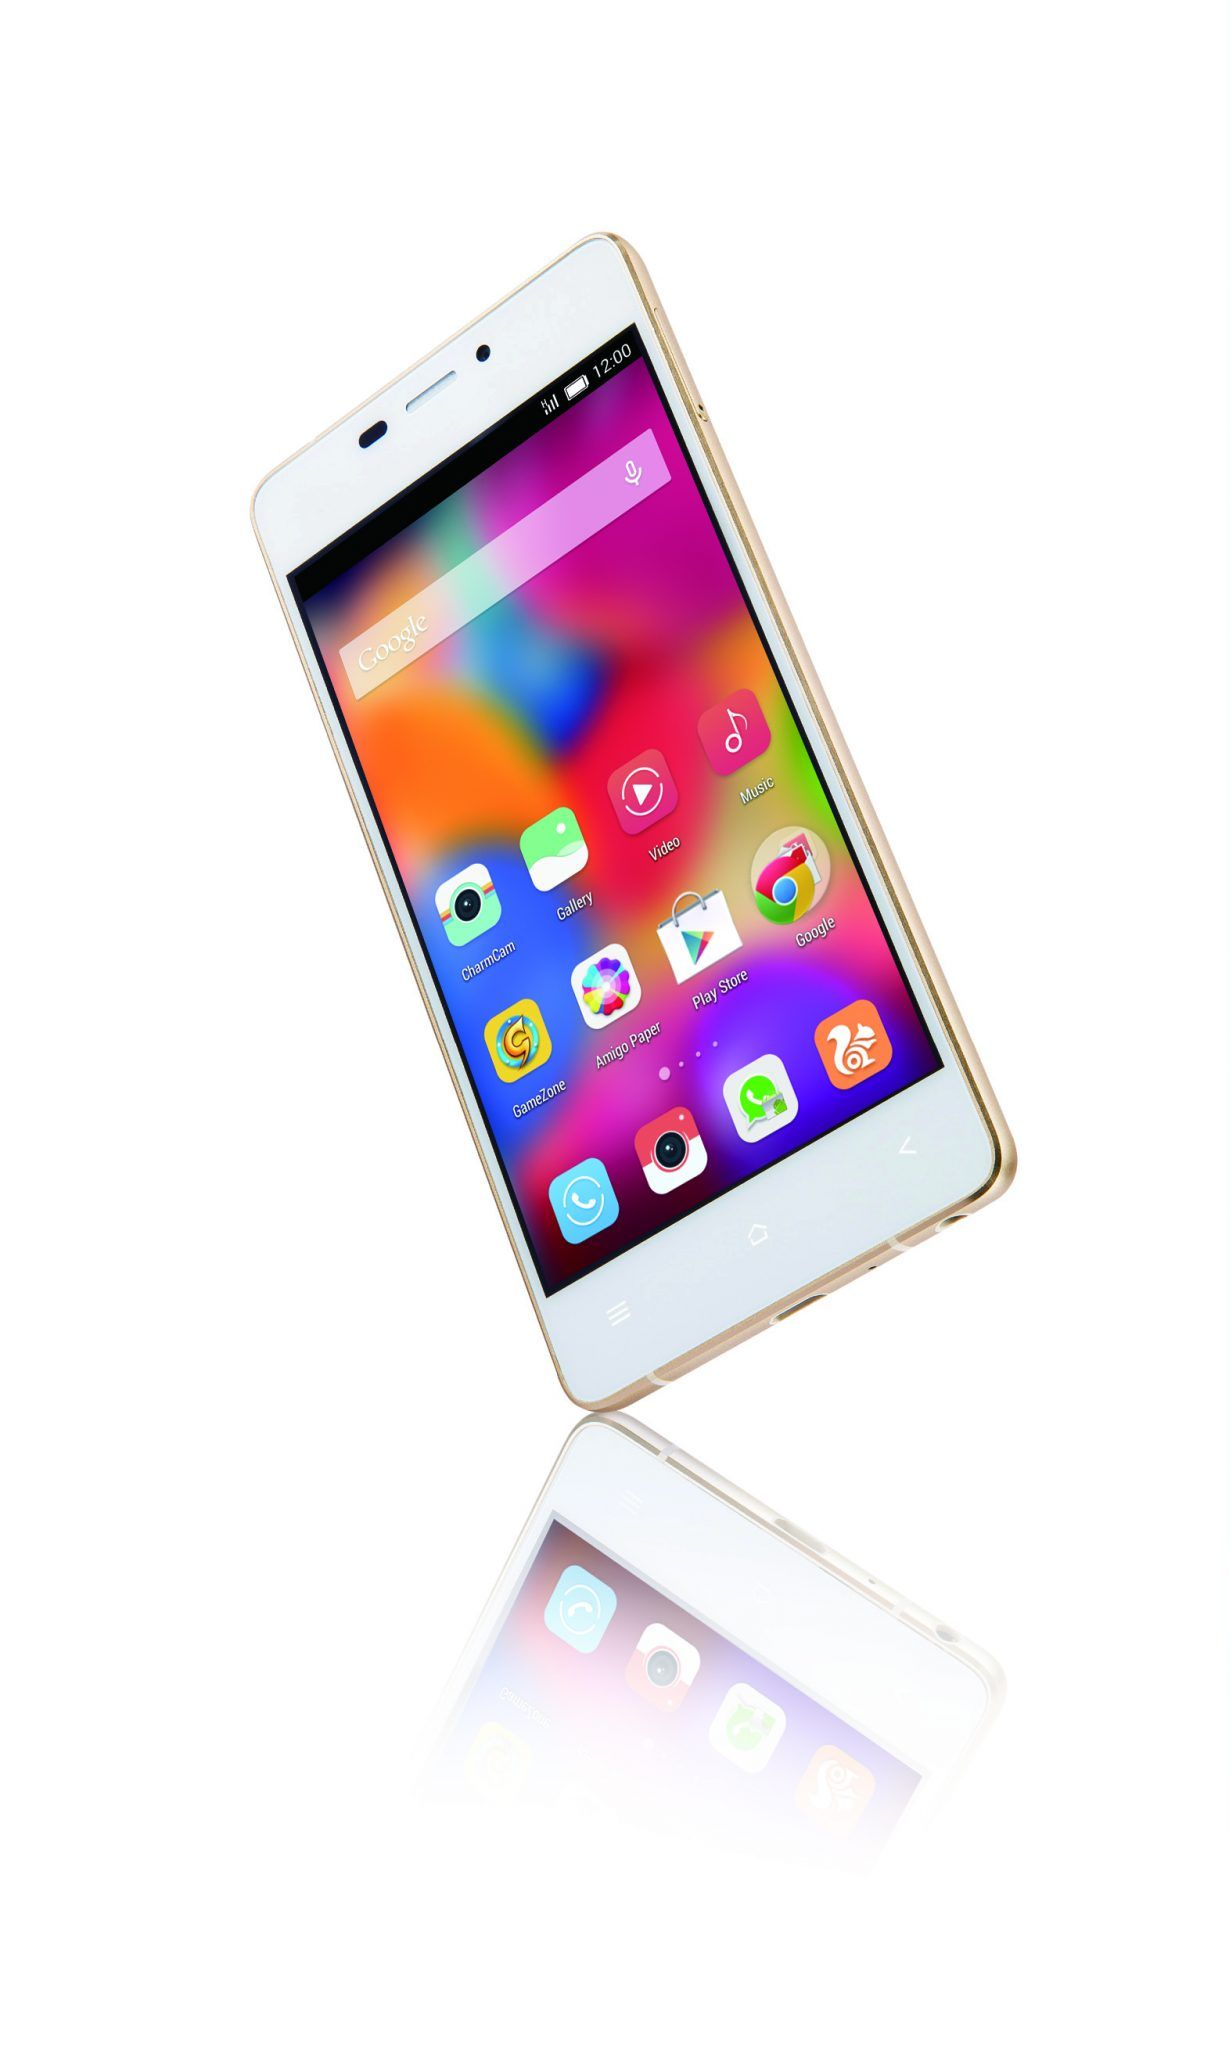 Gionee Elife S5.1, Guinness World Record's 'thinnest smartphone' launches first in Nigeria, Gionee says, Technology Times